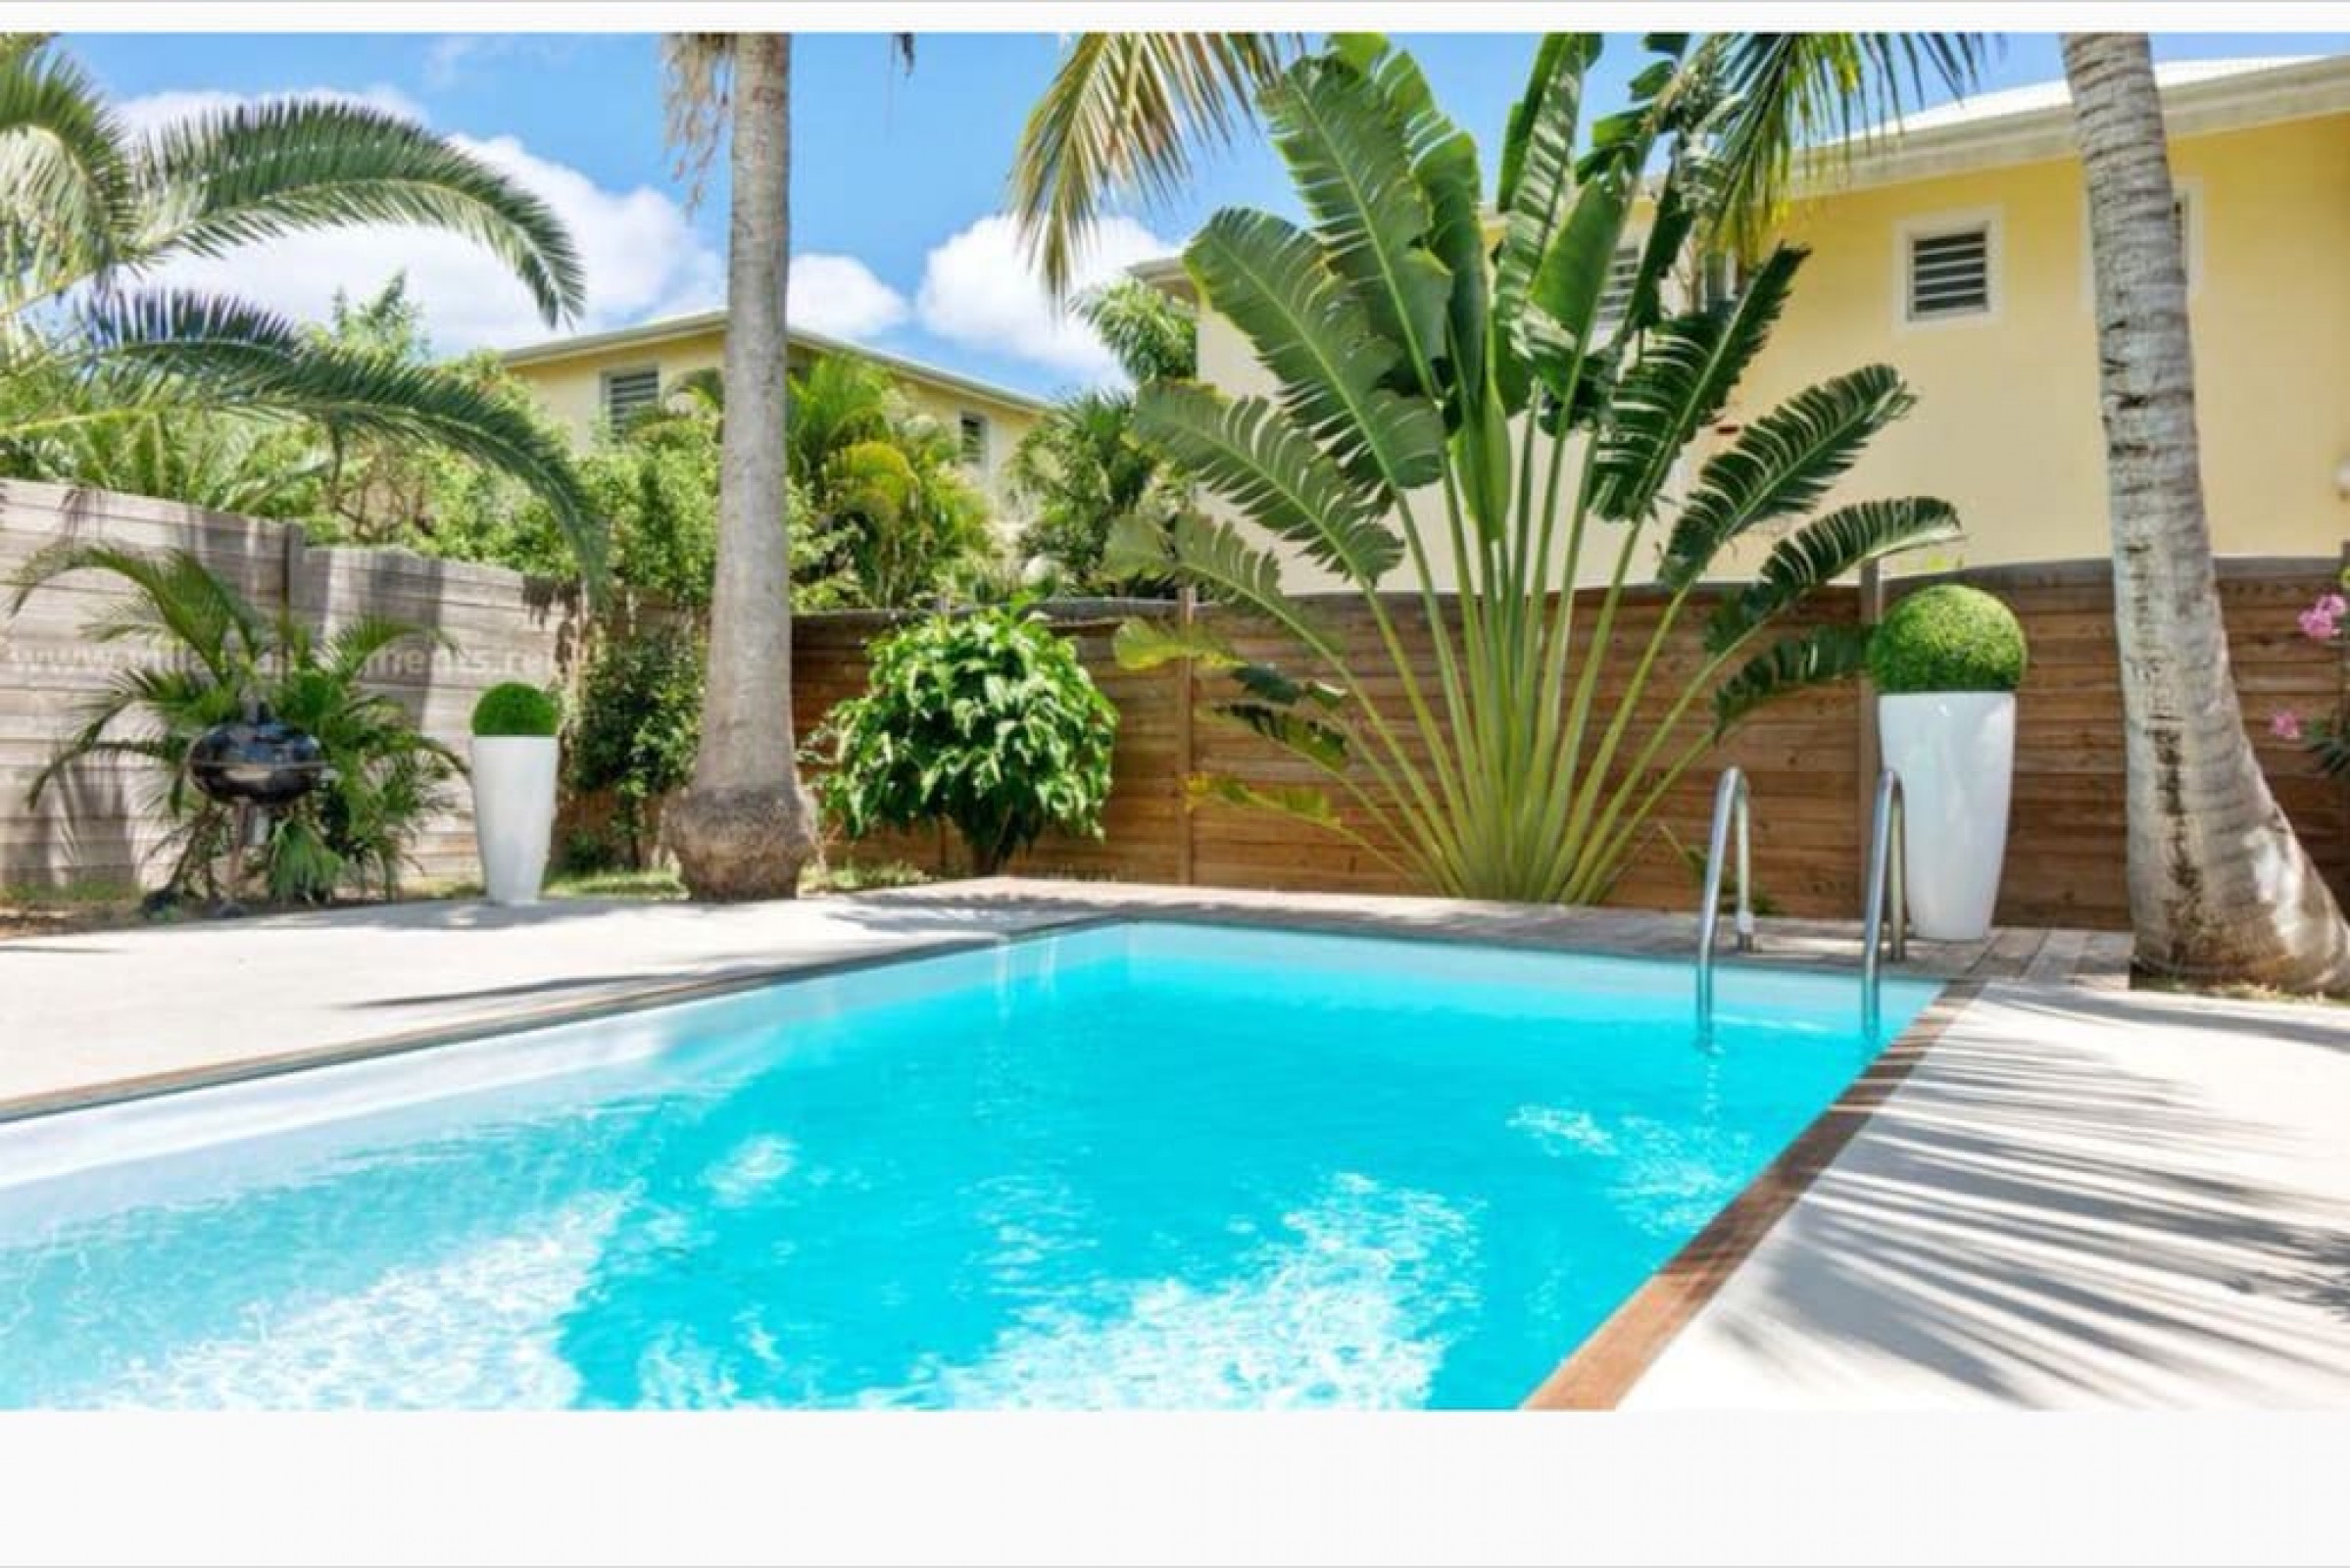 Magellan, spacious villa with private swimming pool, 2 min walk from Orient Bay beach